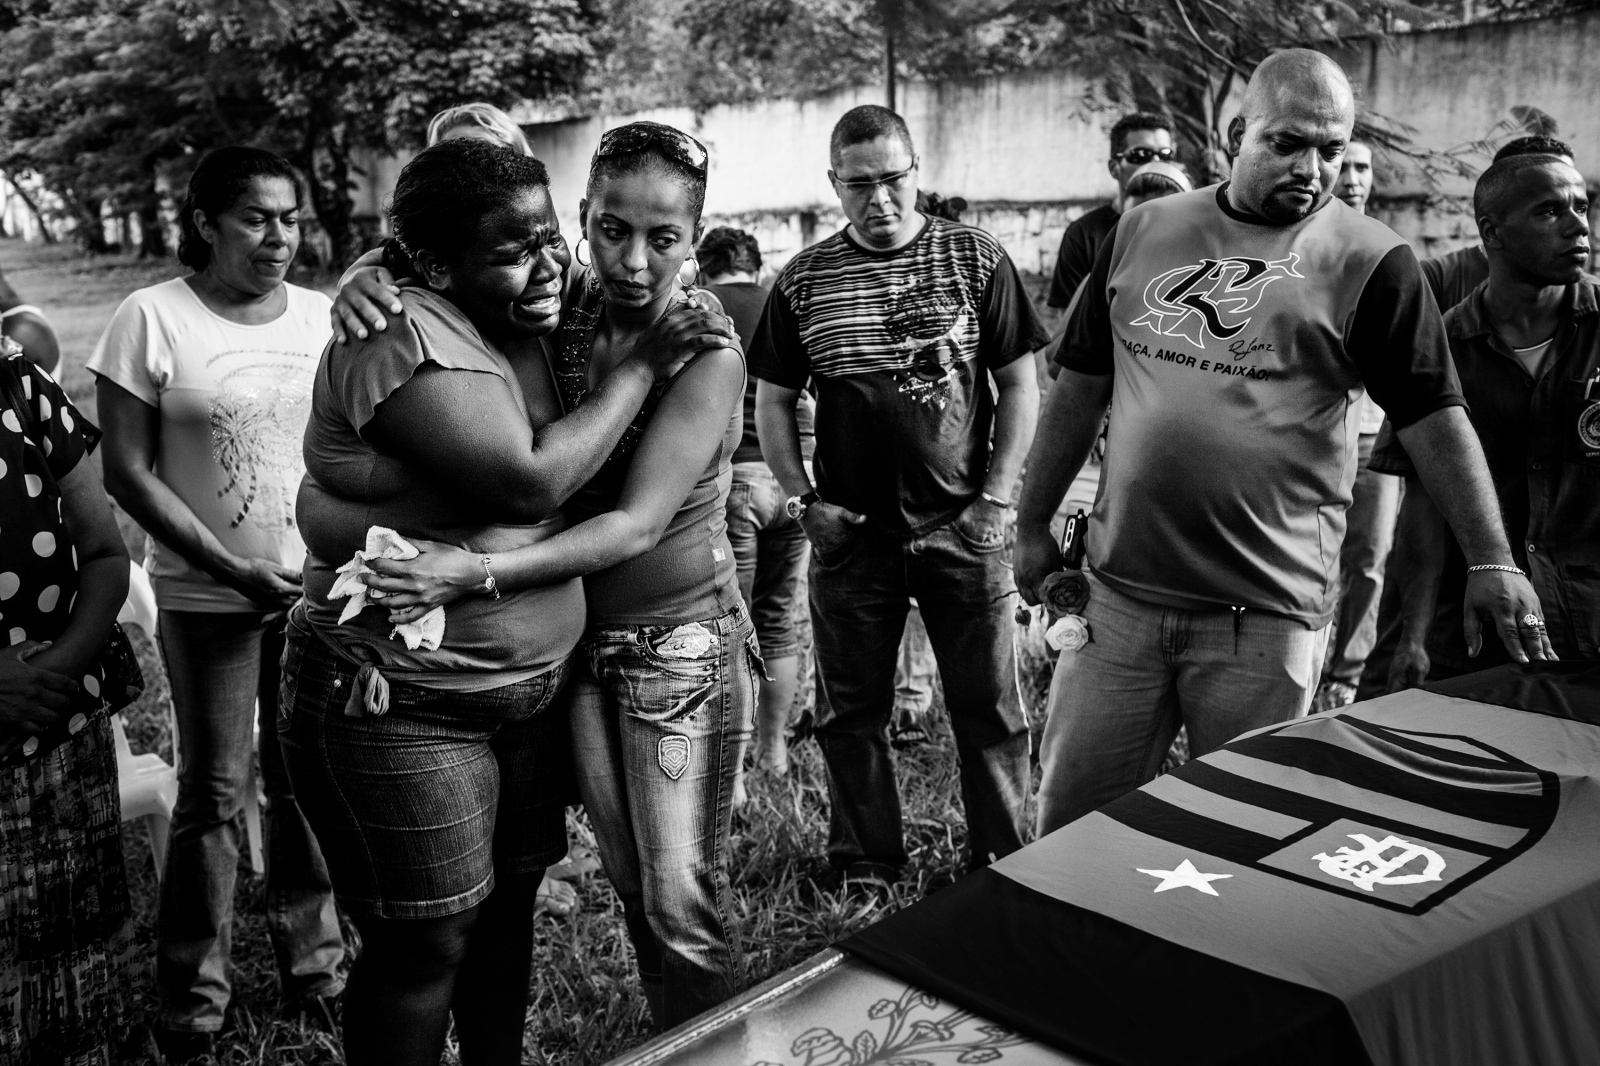 Family and friends of Weslei de Oliveira Batista during his funeral. Weslei was a military police officer who was shot dead when he tried to stop a carjacking. Rio de Janeiro is the world's most dangerous city for policemen – 146 were killed in 2016. Most officers are killed when off duty and identified as a policeman. April 2009.